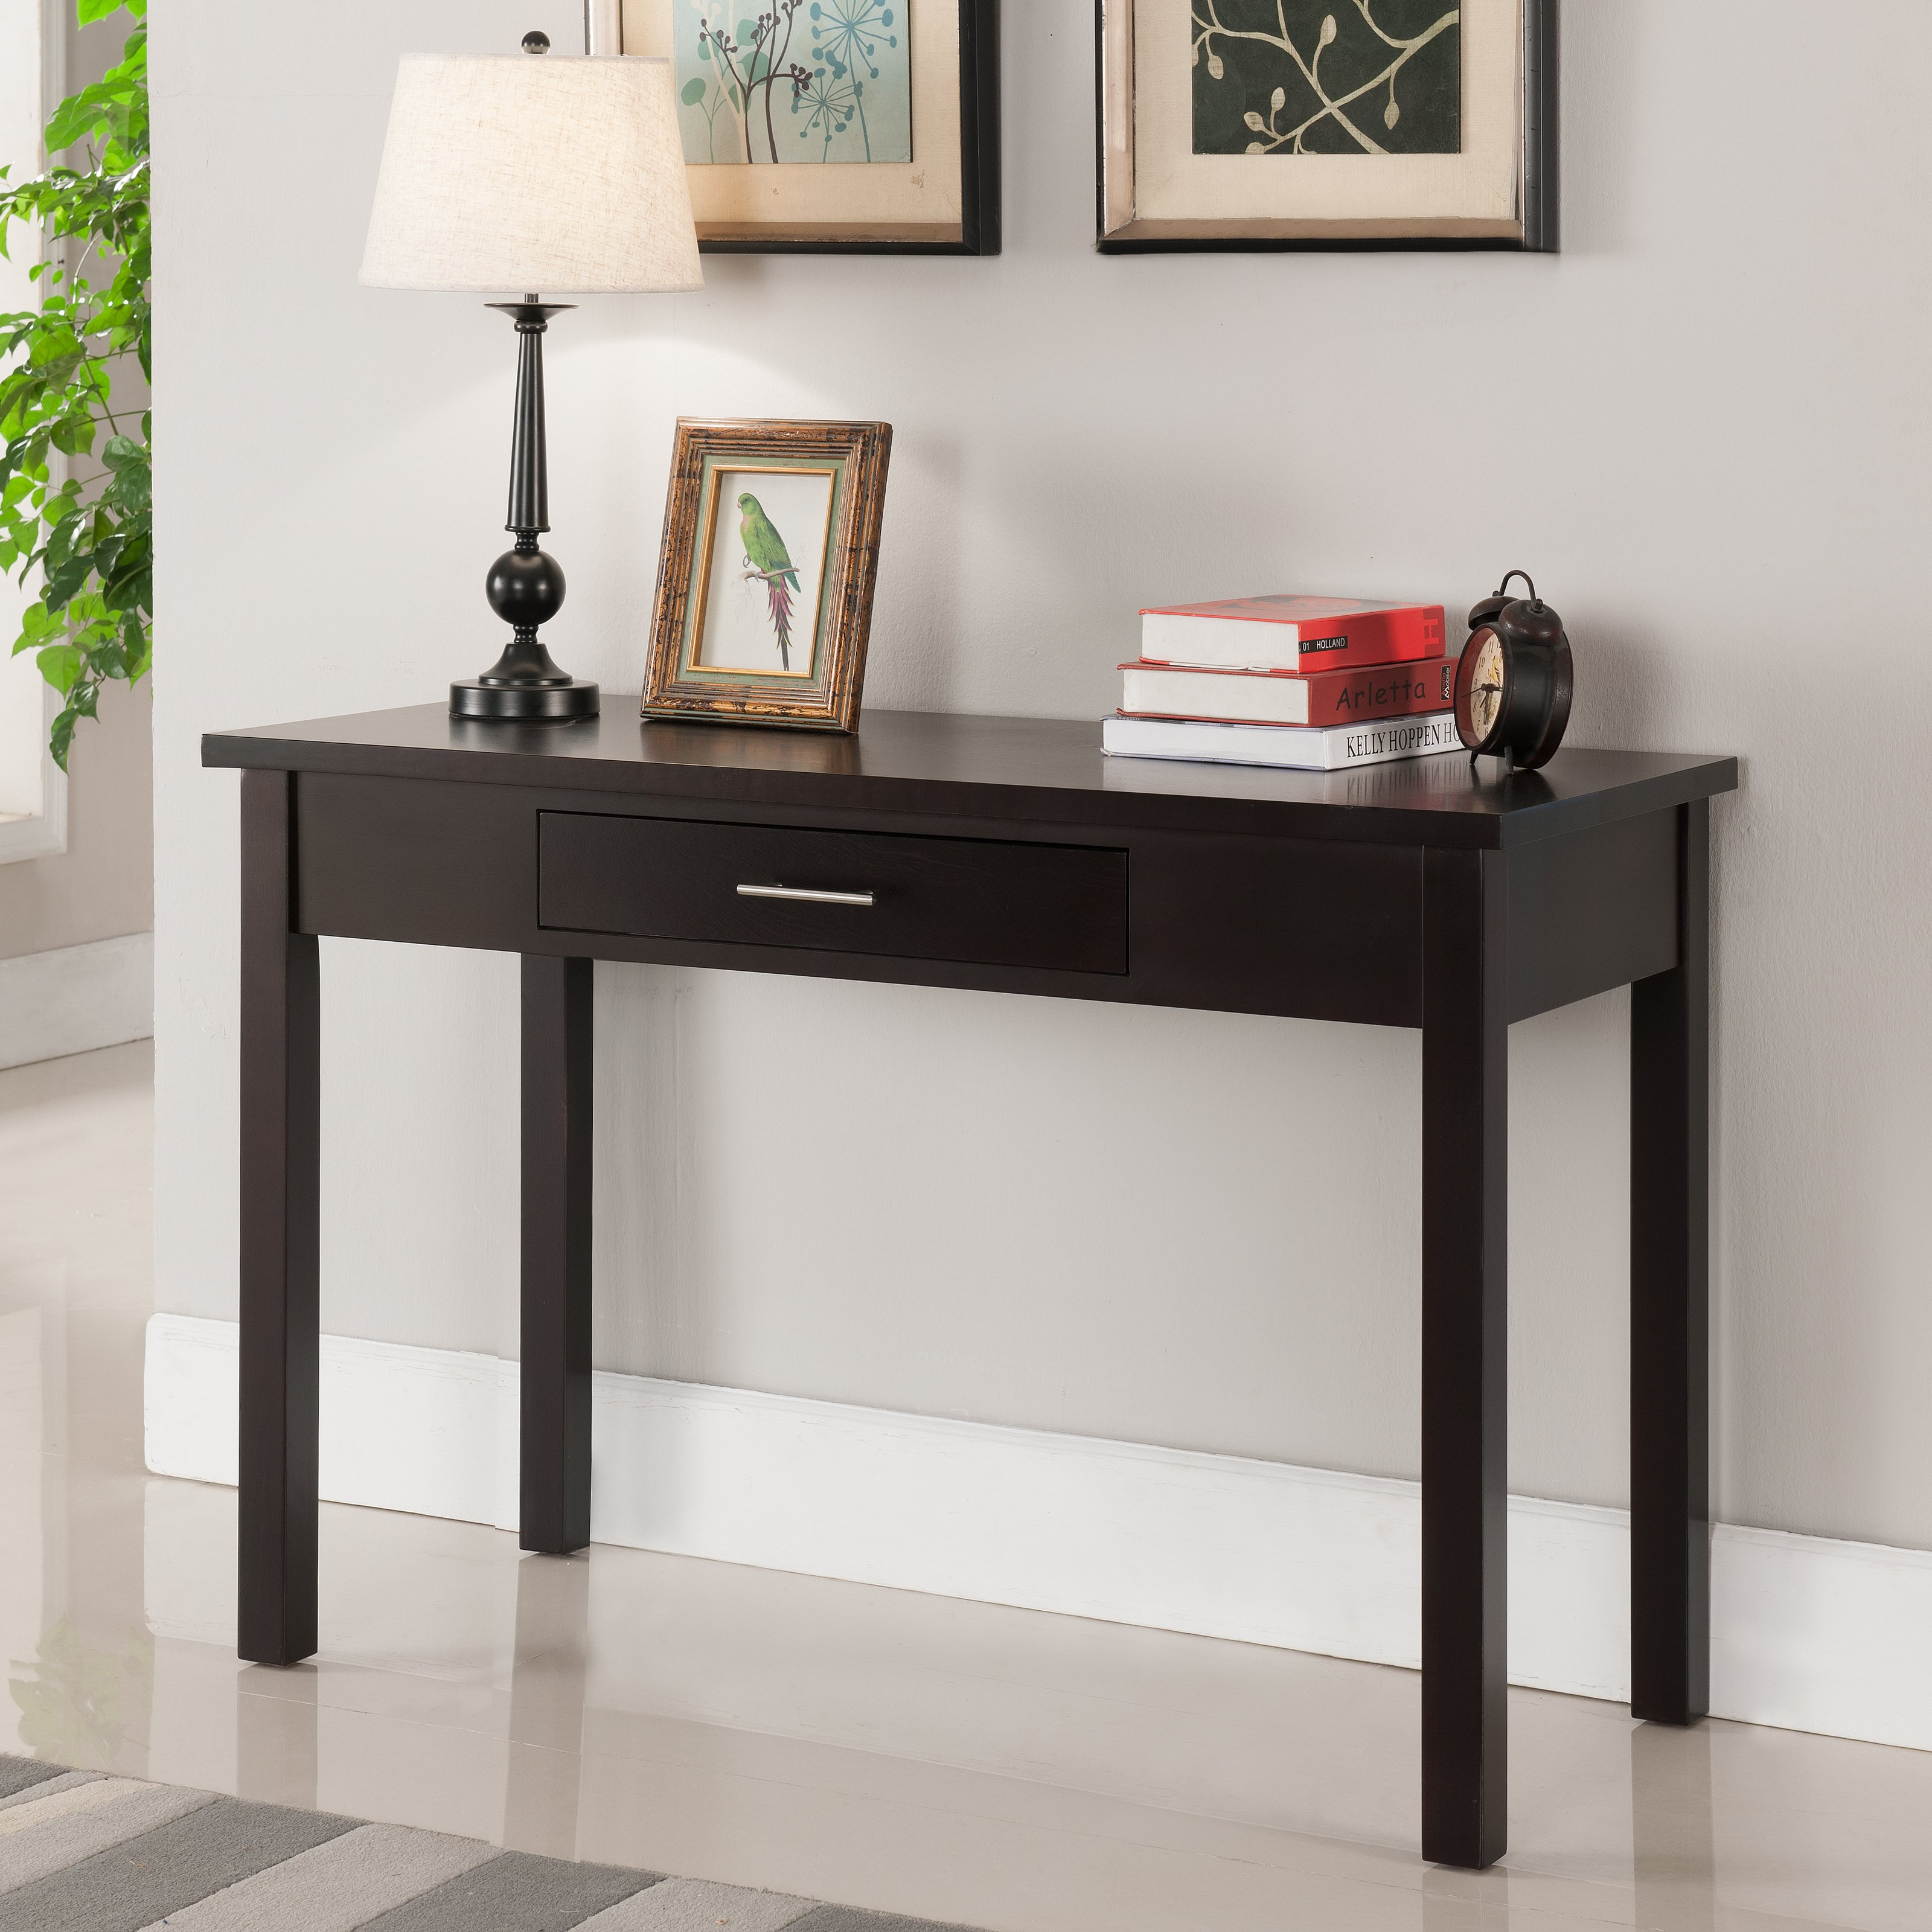 K&B Furniture 45 in. Desk